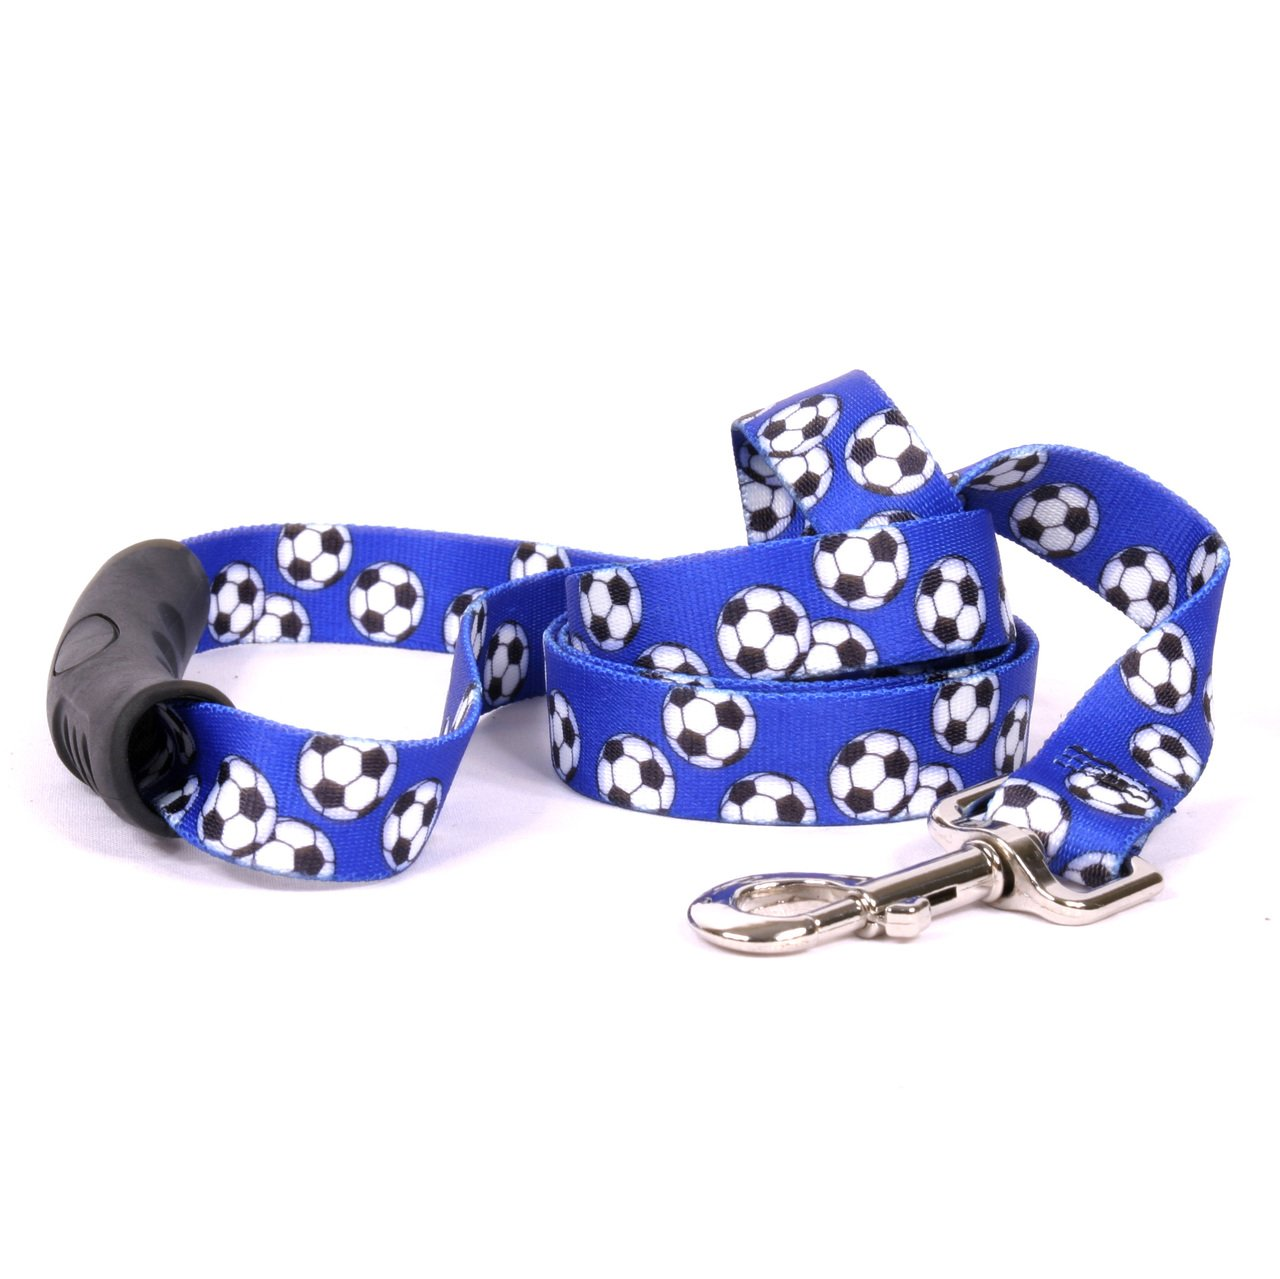 Yellow Dog Design Soccer Balls EZ-Grip Dog Leash-with Comfort Handle-Small/Medium-3/4 and 5 feet (60'') Long by Yellow Dog Design